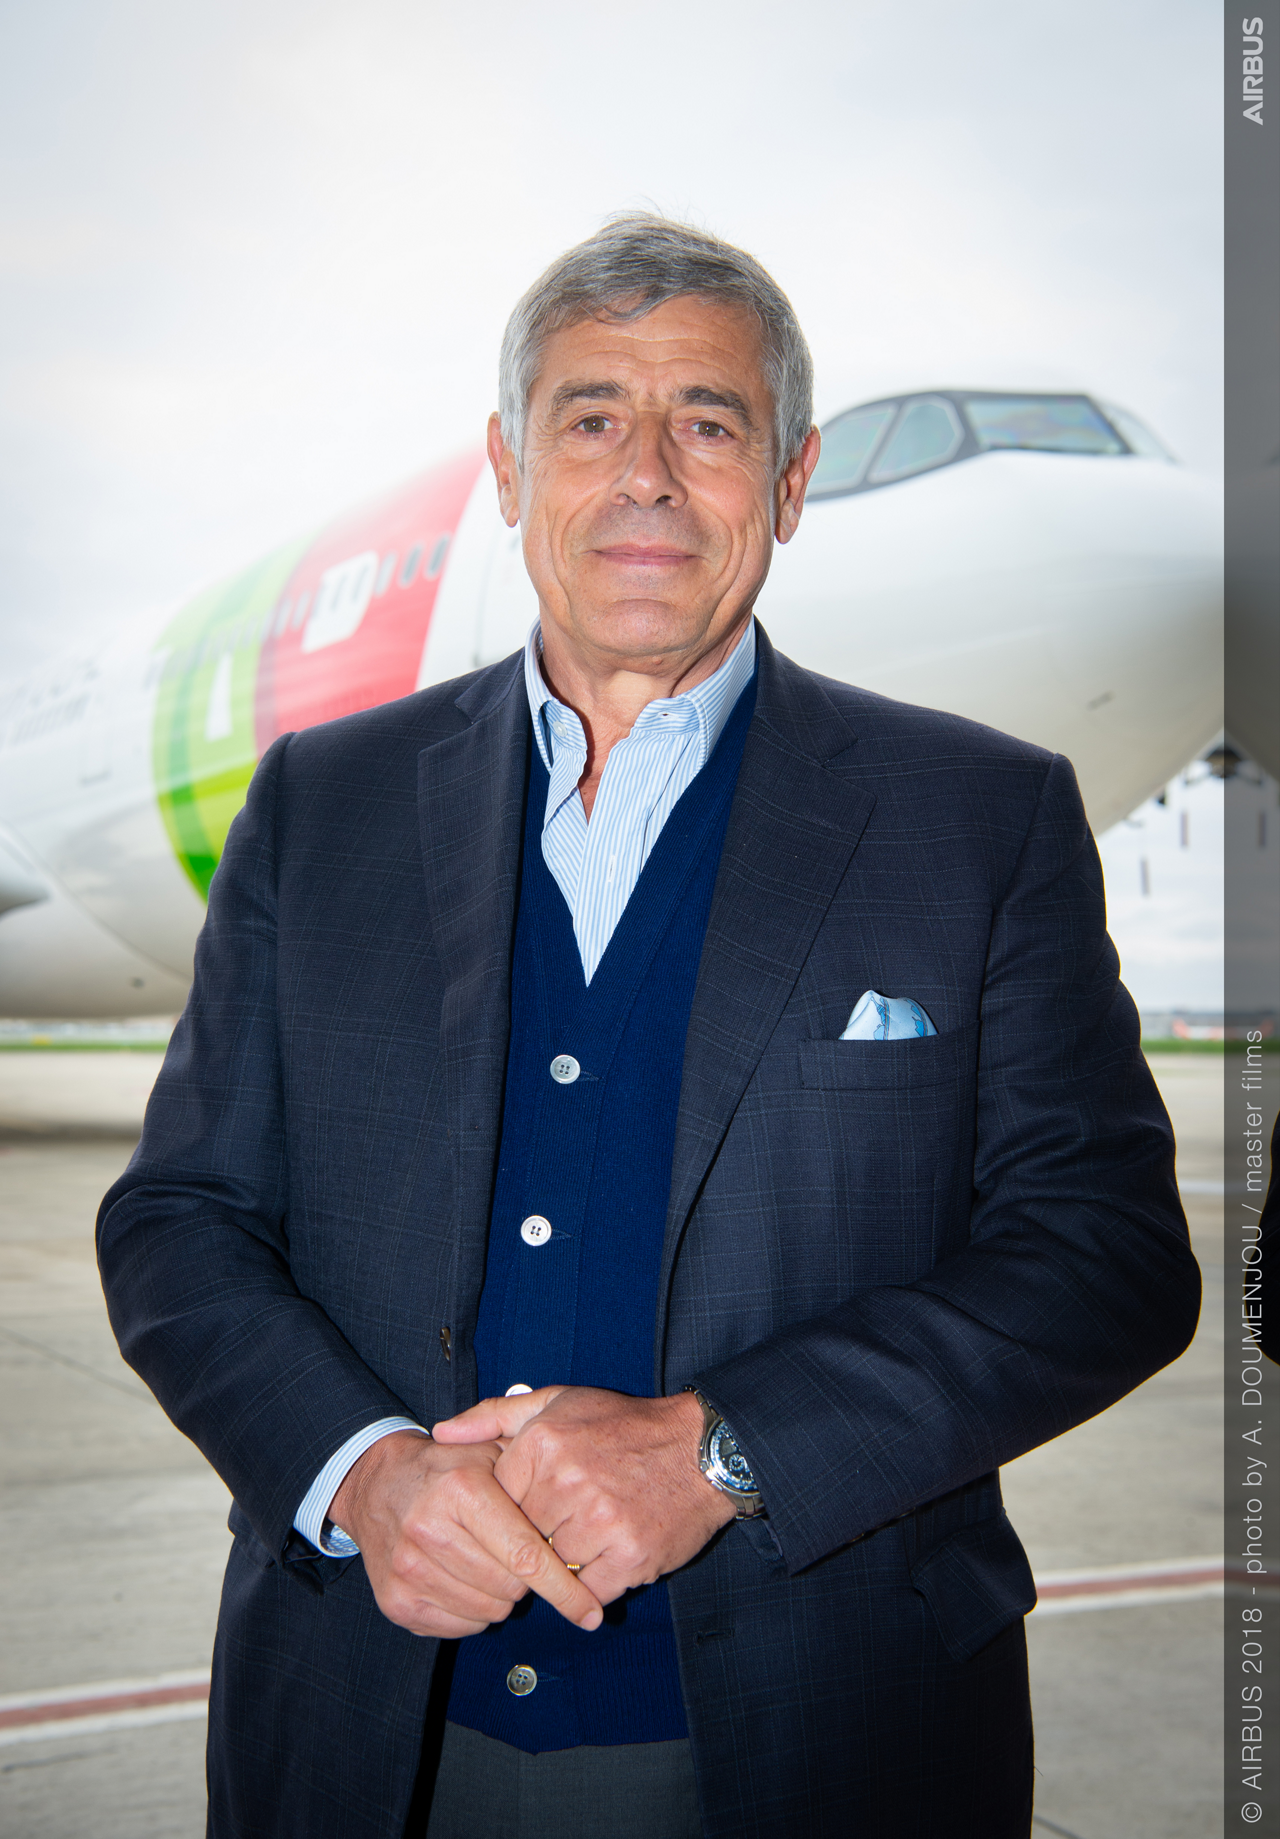 First A330-900 TAP Air Portugal MSN1836 Delivery Ceremony - Employees Testimonies   Jean-Michel Roy, Test Pilot  (Airbus)  in front of First A330-900 TAP Air Portugal   First A330-900 TAP Air Portugal   TAP Air Portugal takes delivery of the world's first new generation widebody A330neo   2018, November 26th